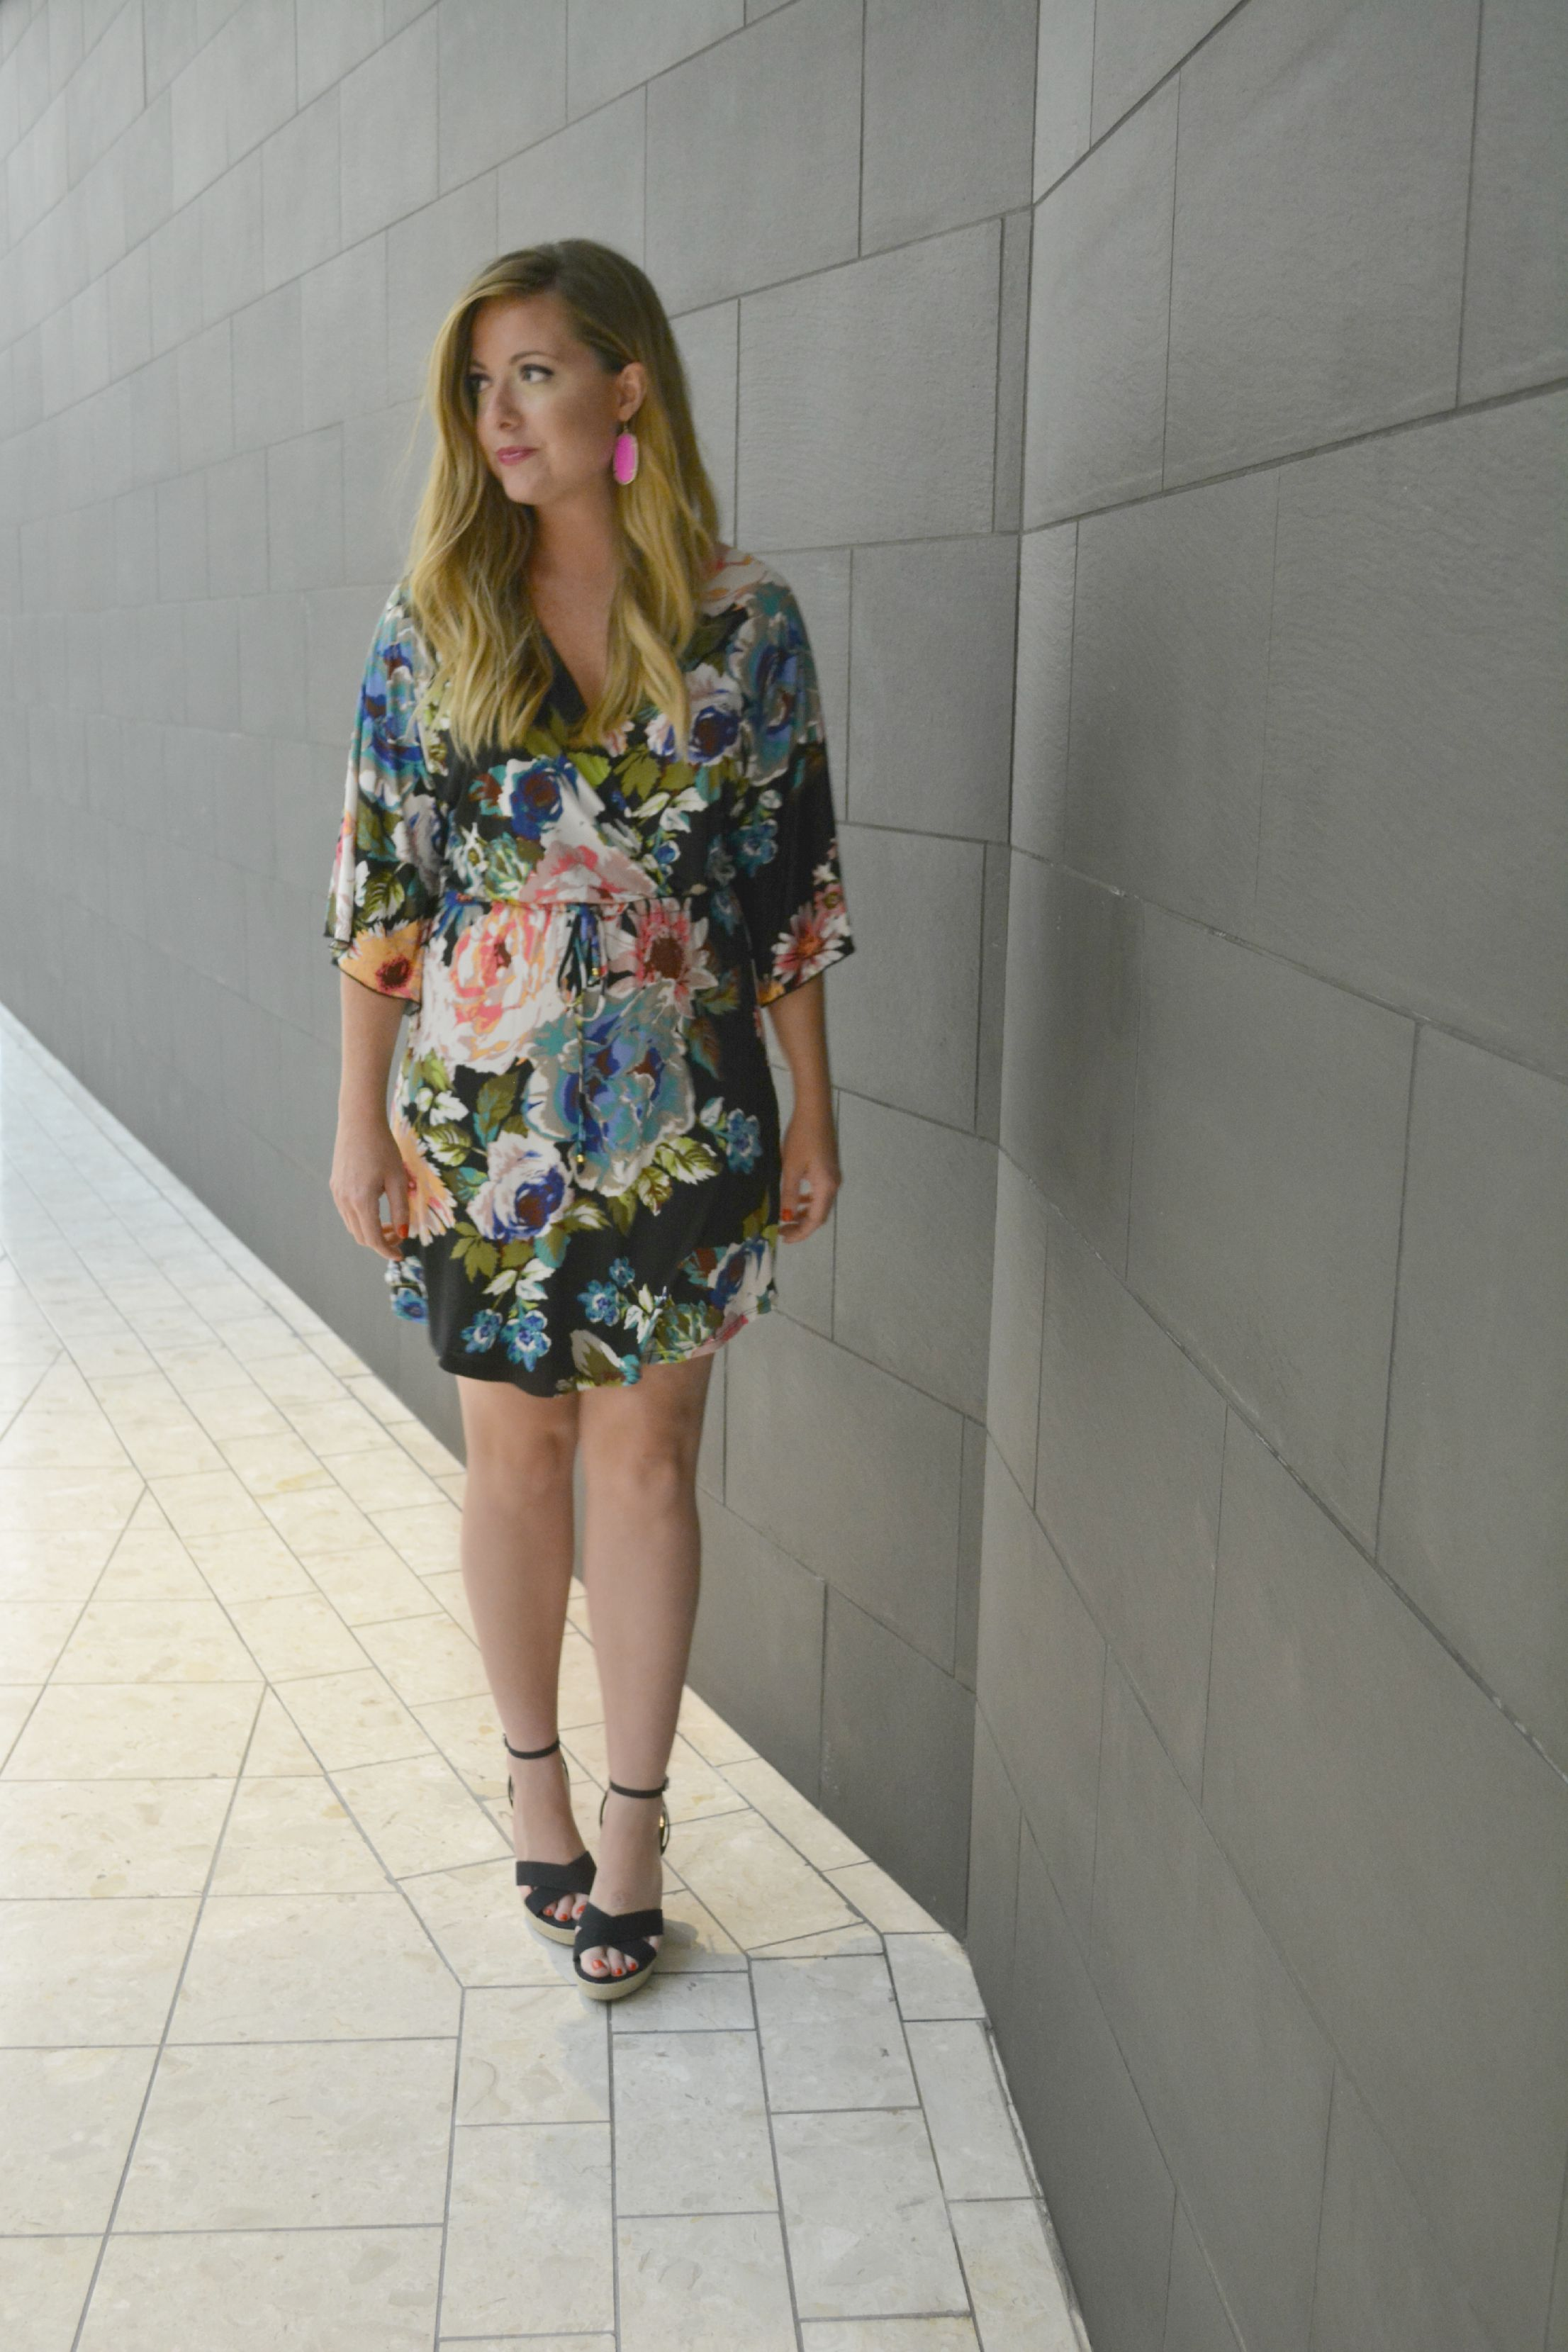 Kendra Scott 'Danielle' earrings giveaway and floral dress on Sophisticaited.com